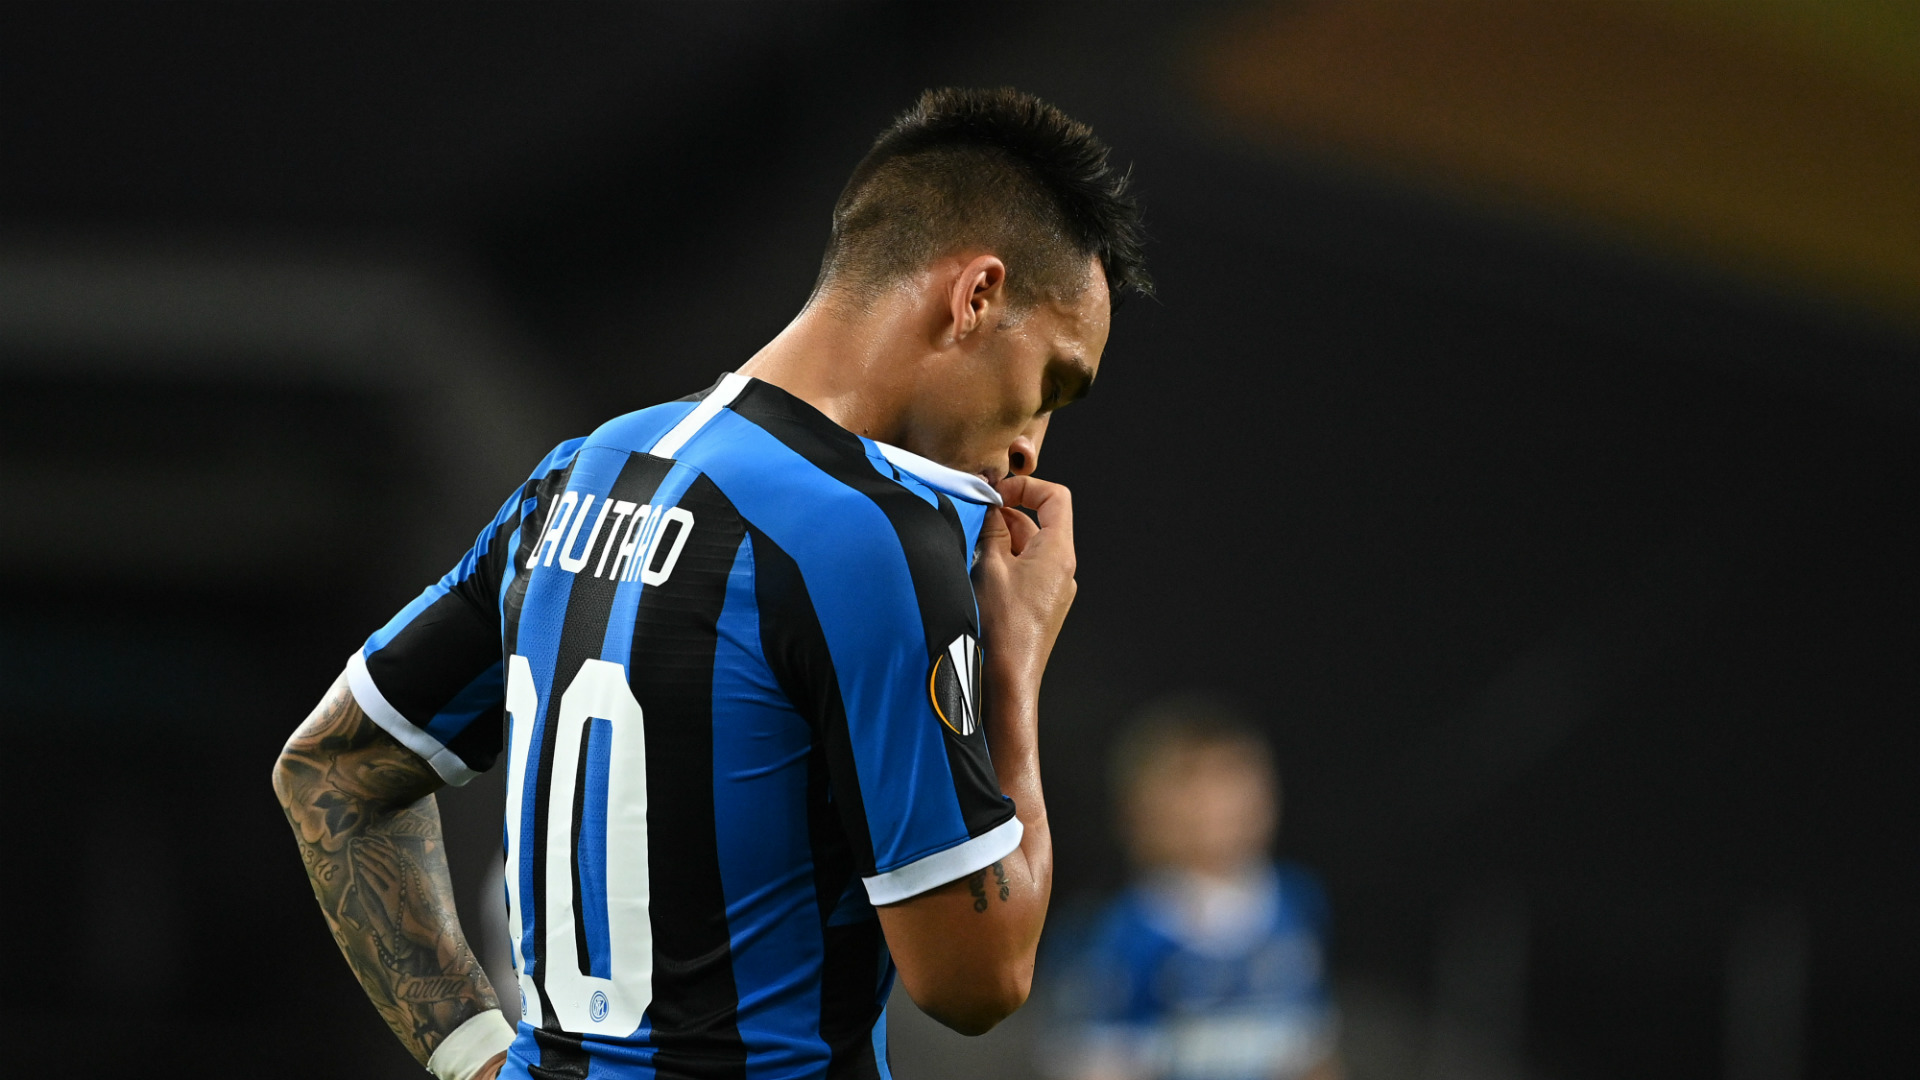 Lautaro Martinez au Real, c'est un secret — Mercato